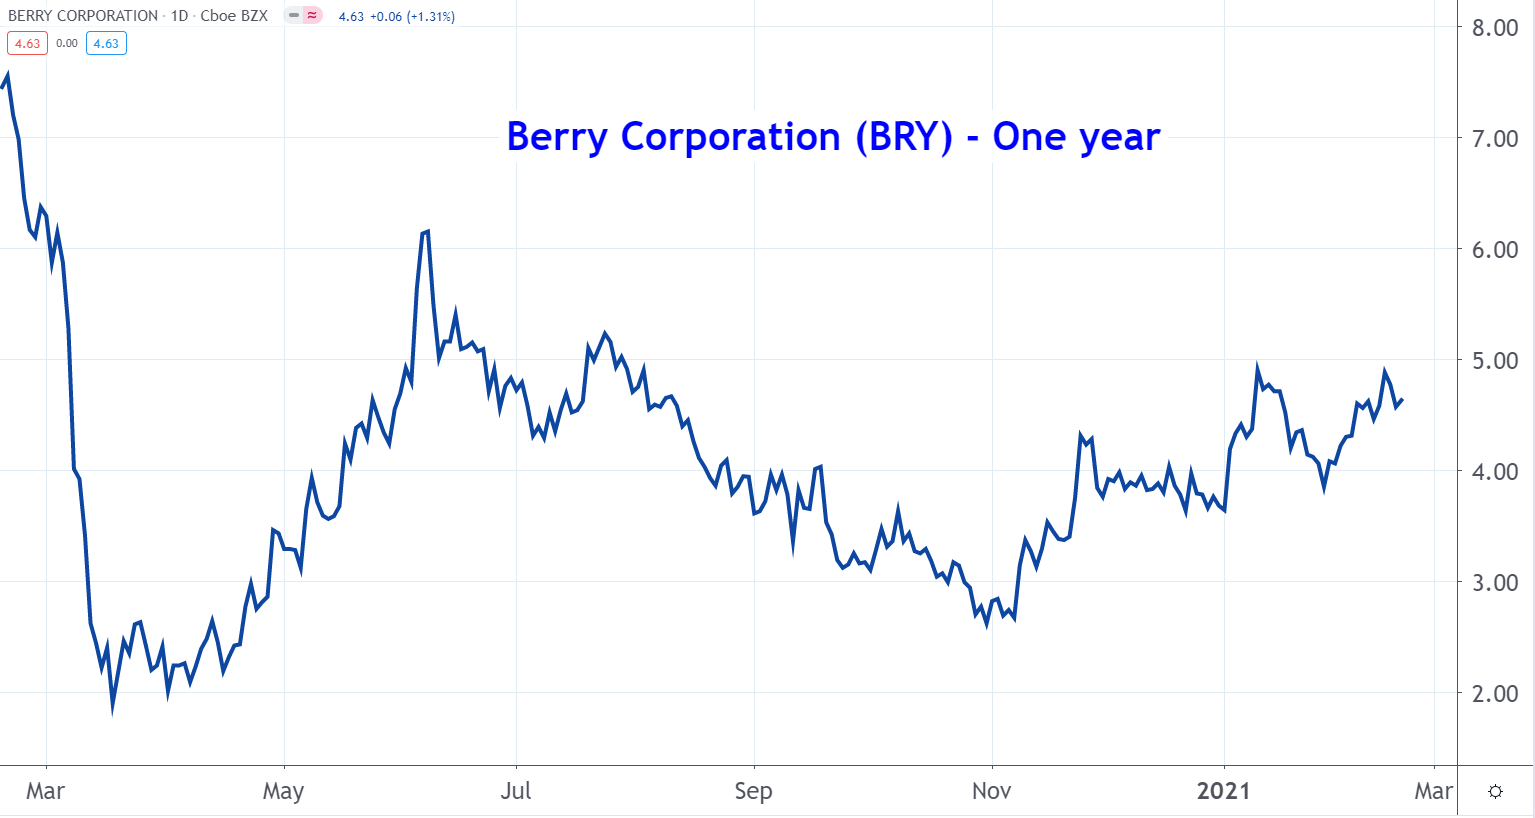 Line graph of Berry Corporation stock price from March 2020 to March 2021, showing a recent uptrend after volatility earlier in the year